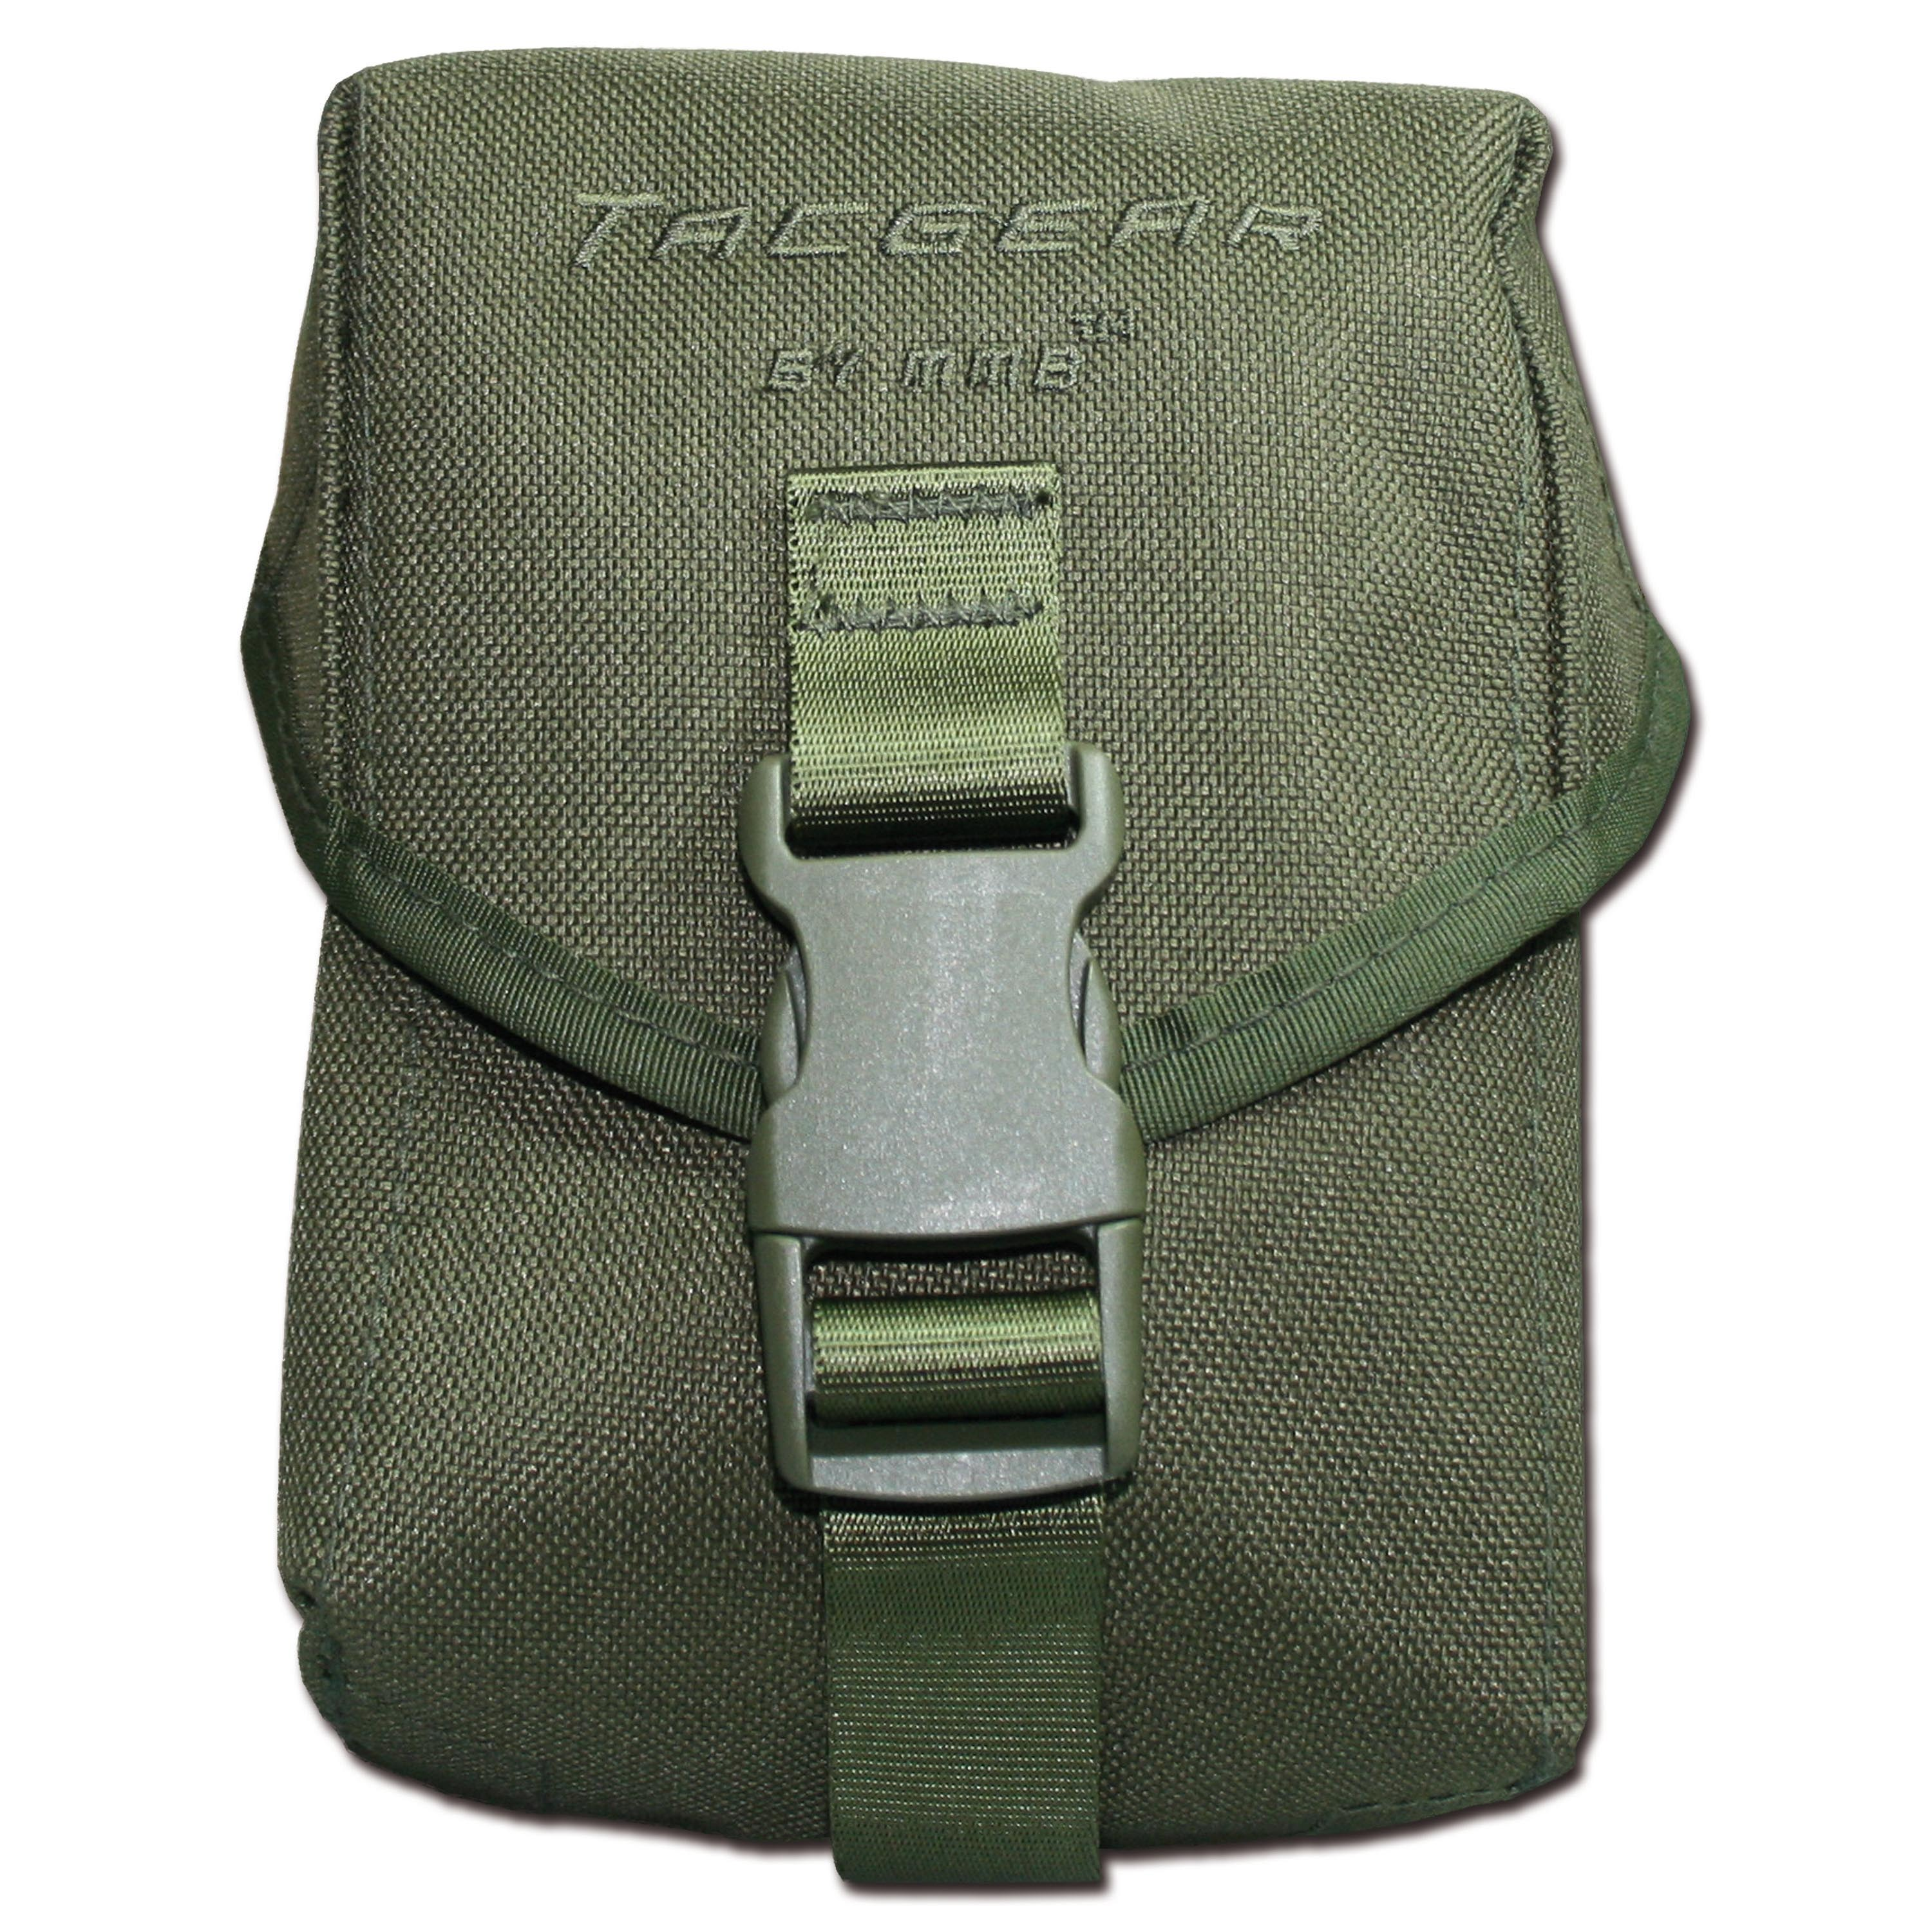 Ammunition Pouch TacGear 100 RD olive